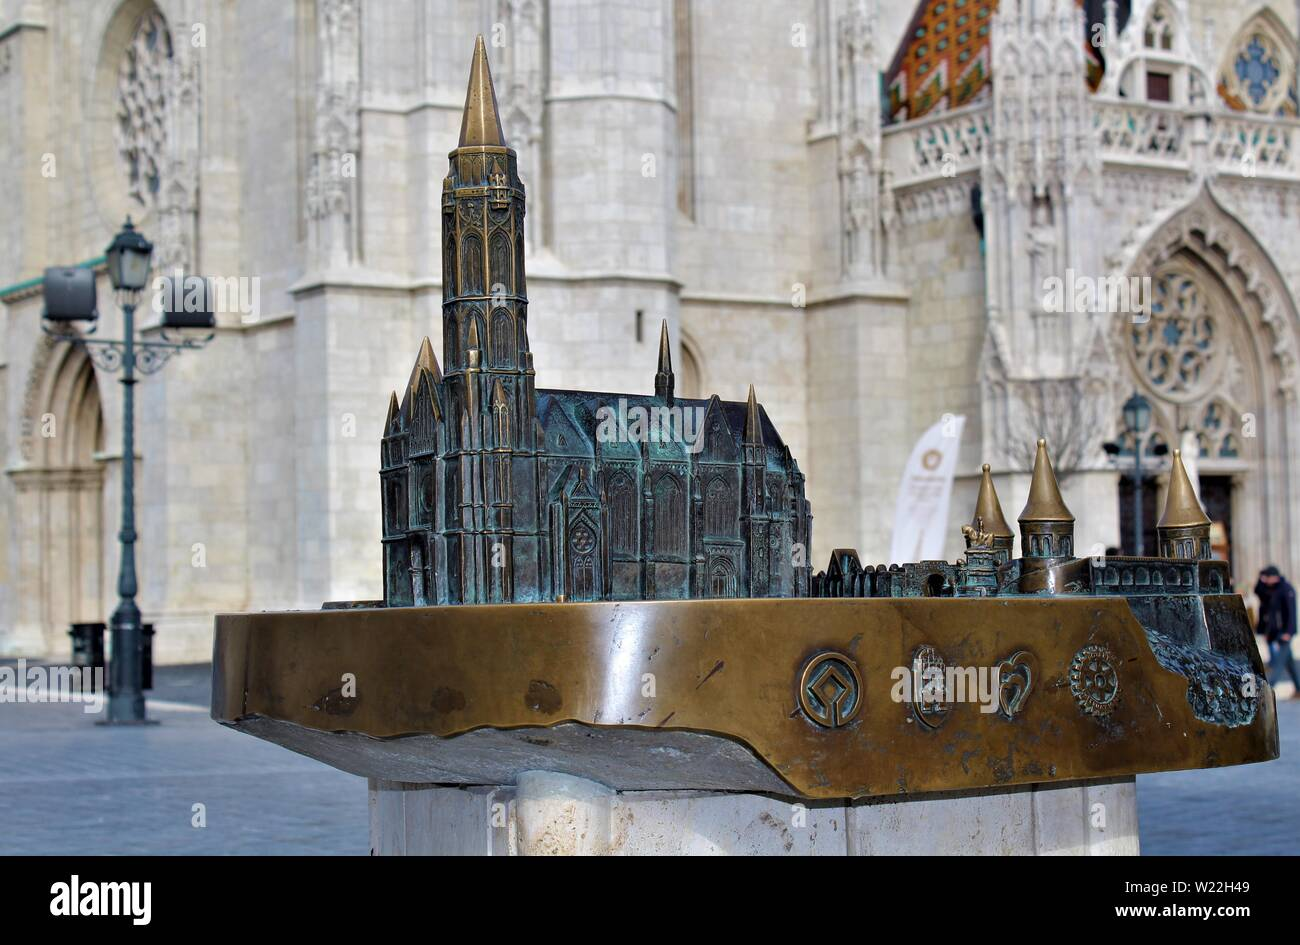 A bronze model of St Matthias church and Fishermans Bastion in Budapest, which is situated a short distance from the entrance to St Matthias church. Stock Photo